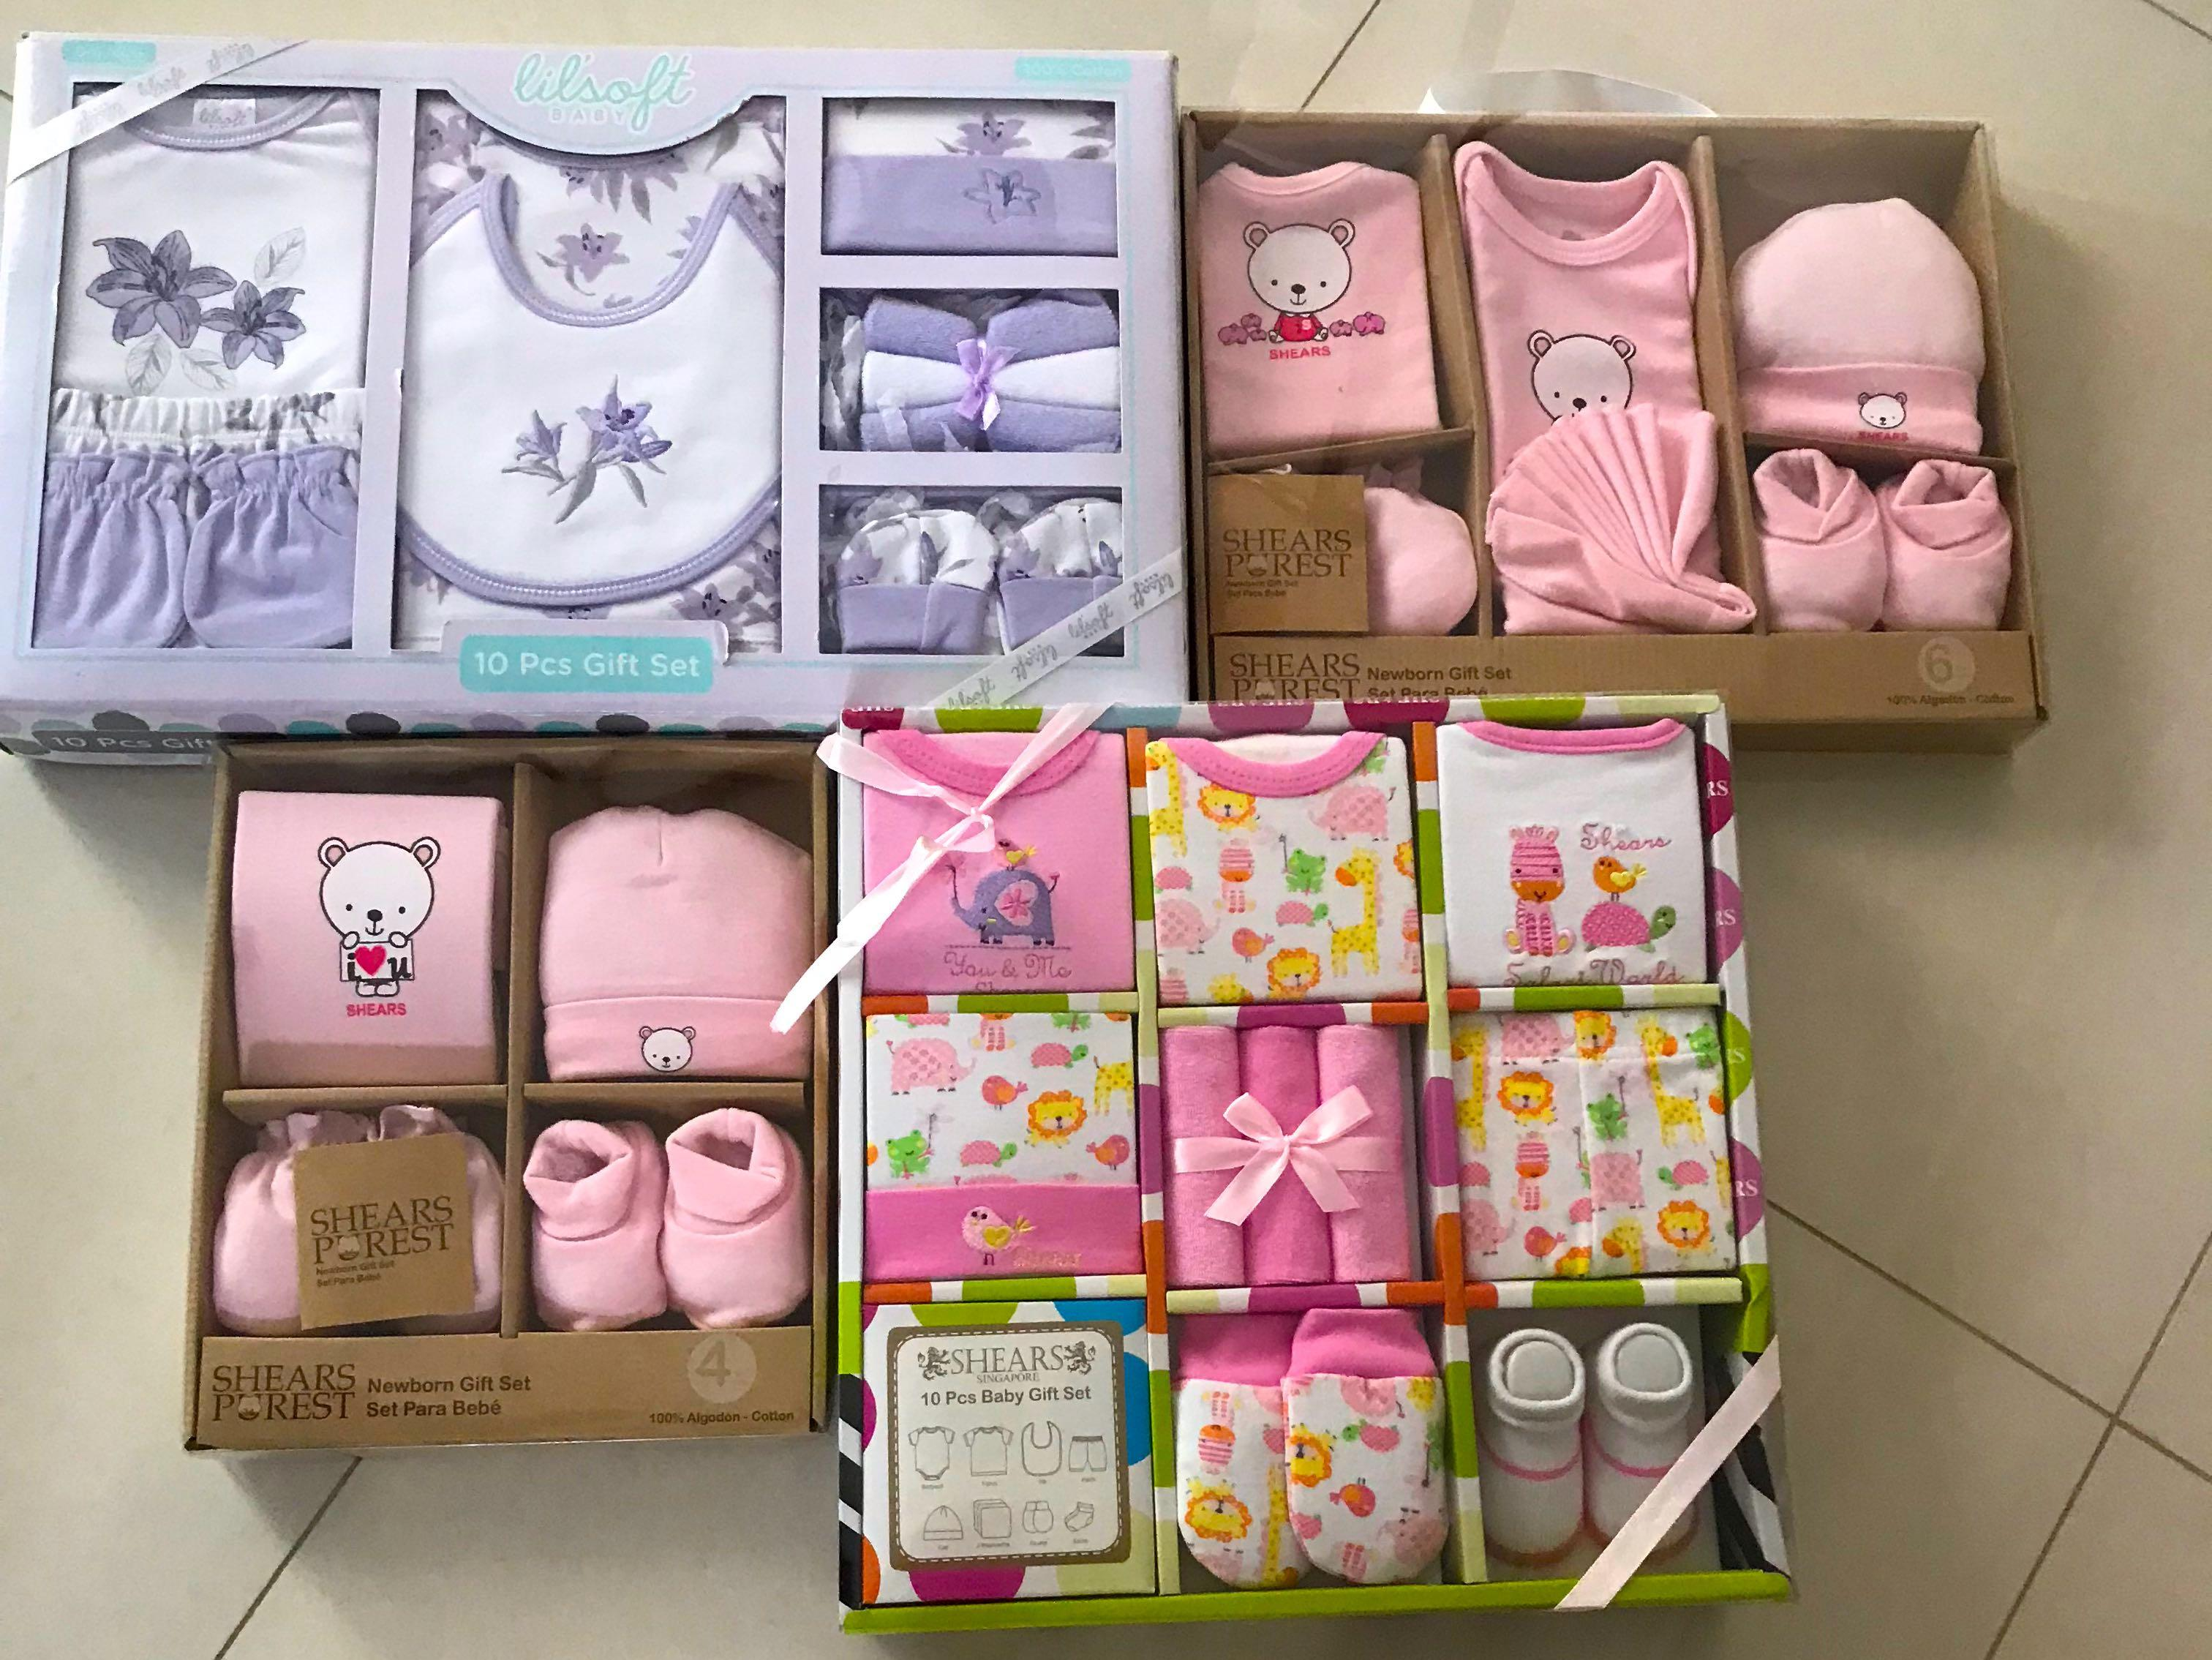 Newborn baby girl clothes, Babies & Kids, Babies Apparel on Carousell